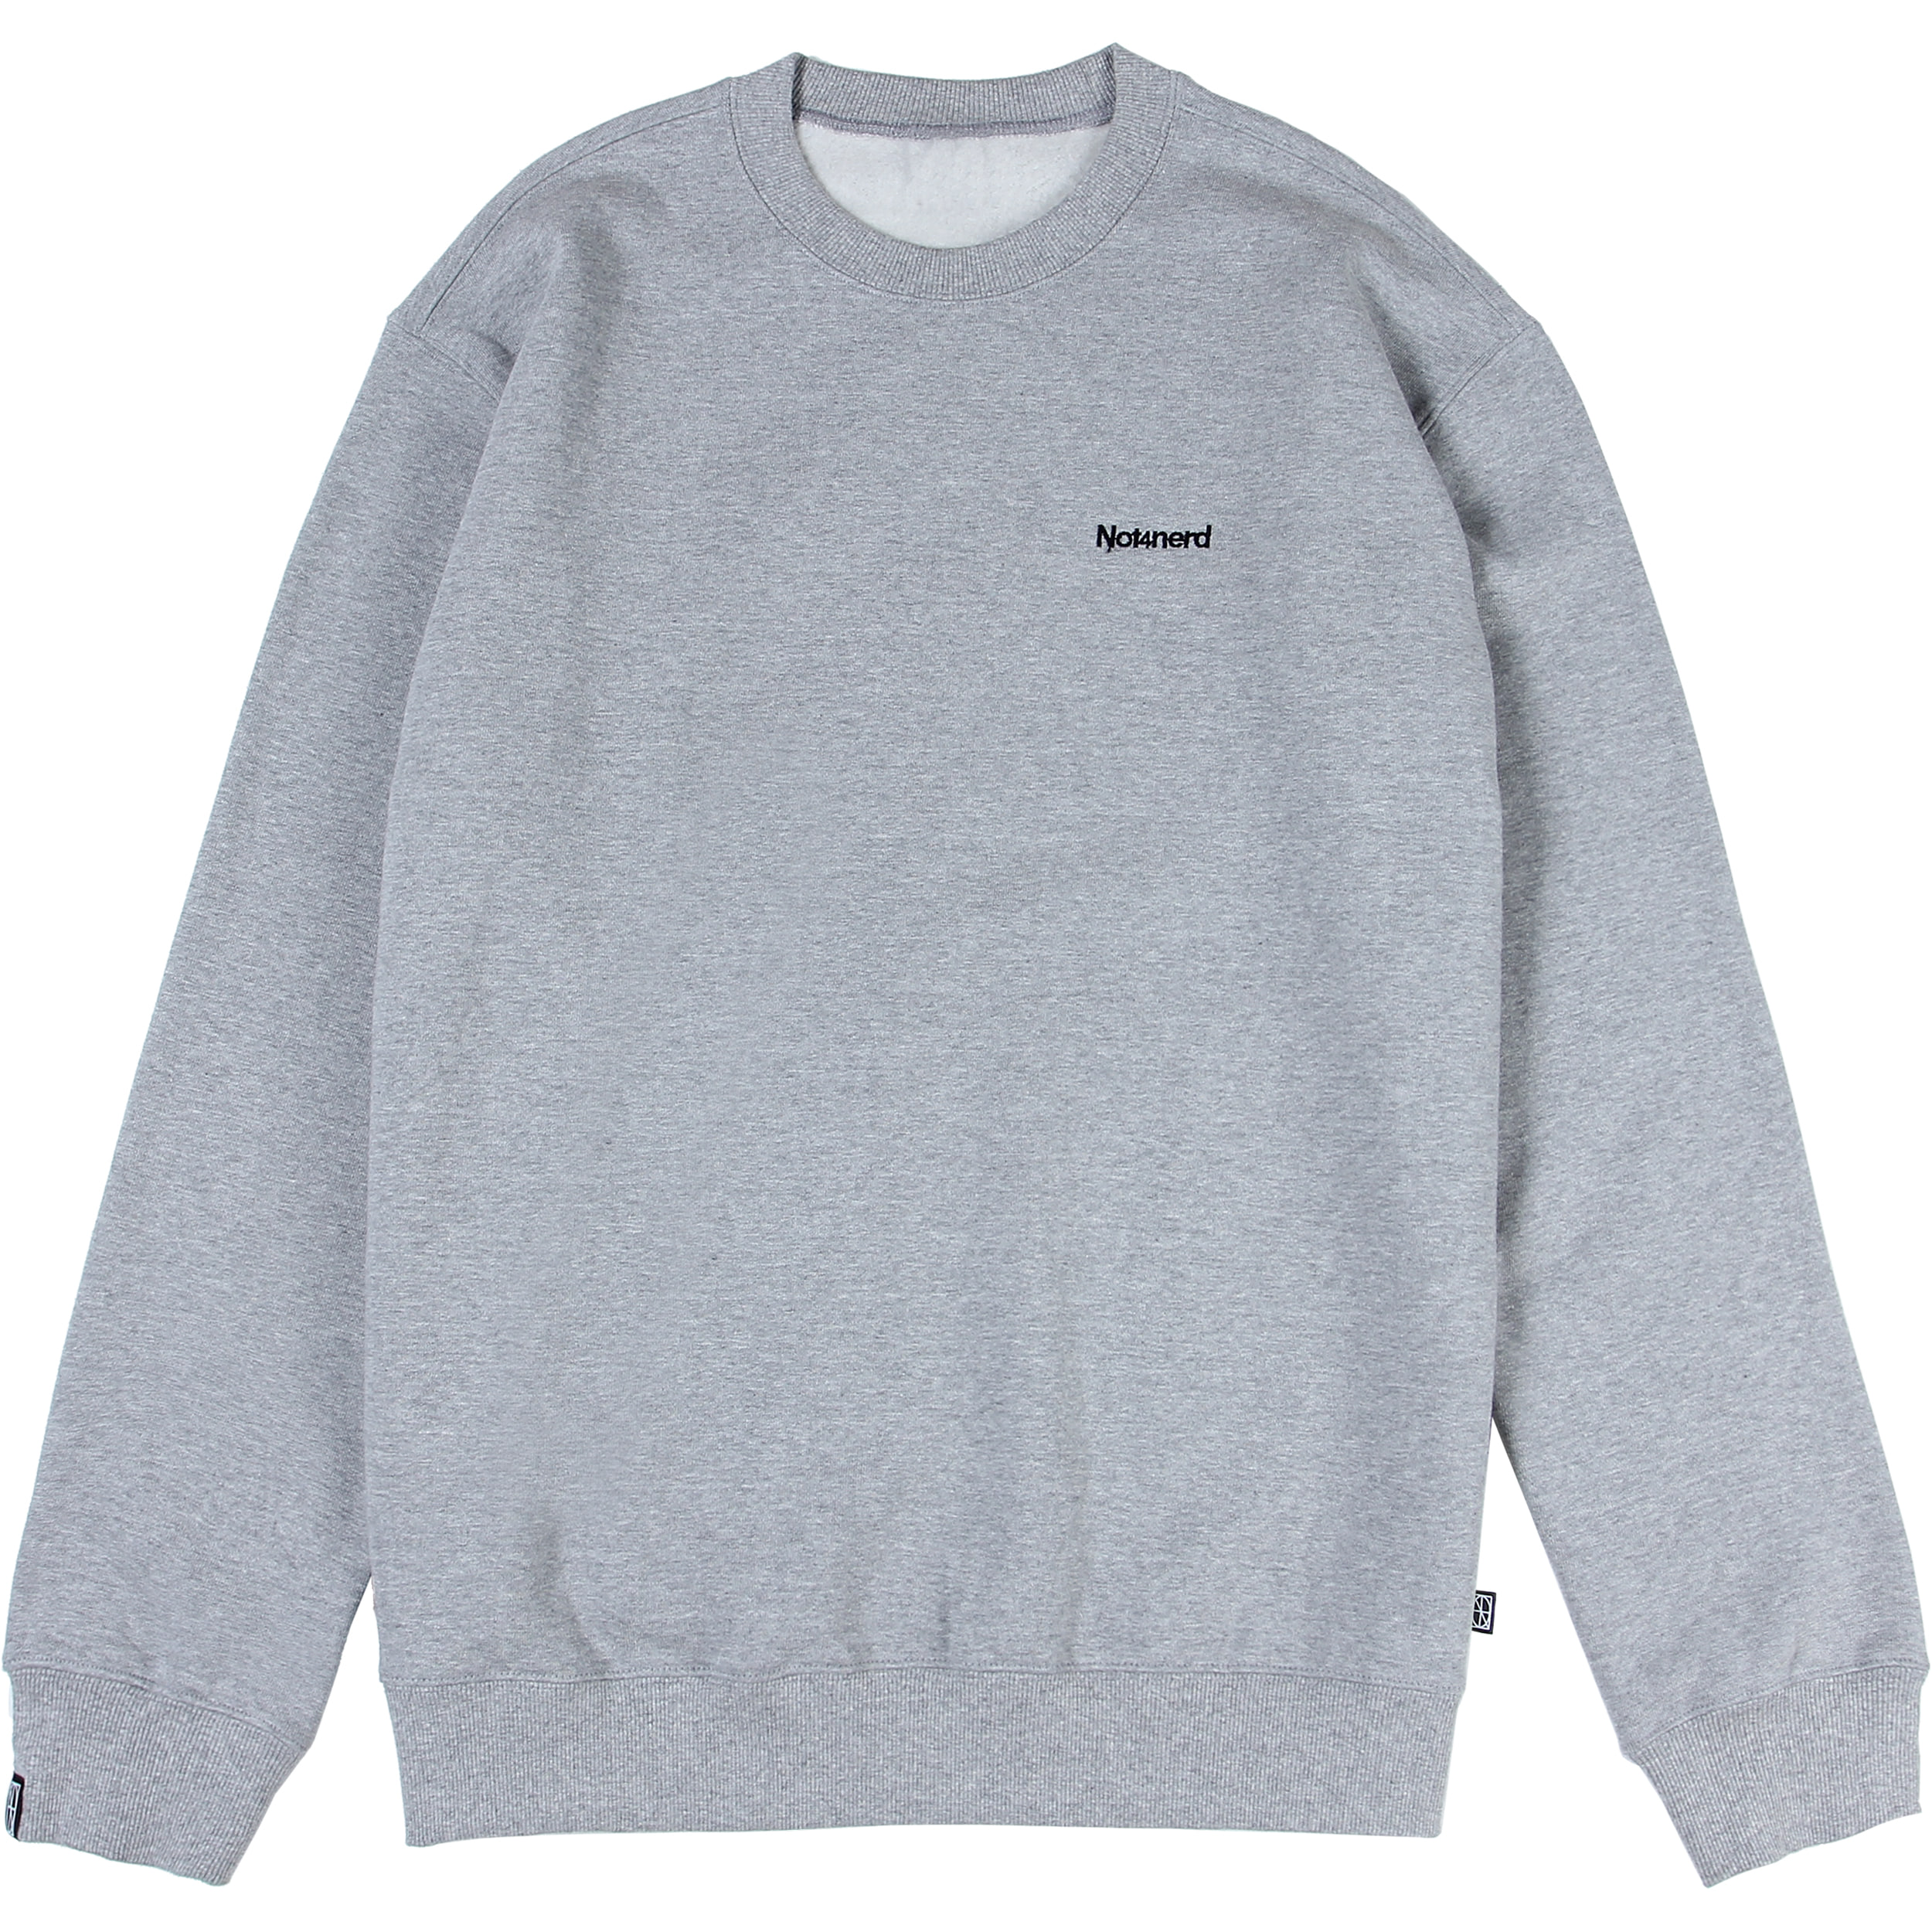 Narcissism Crewneck [Grey],NOT4NERD